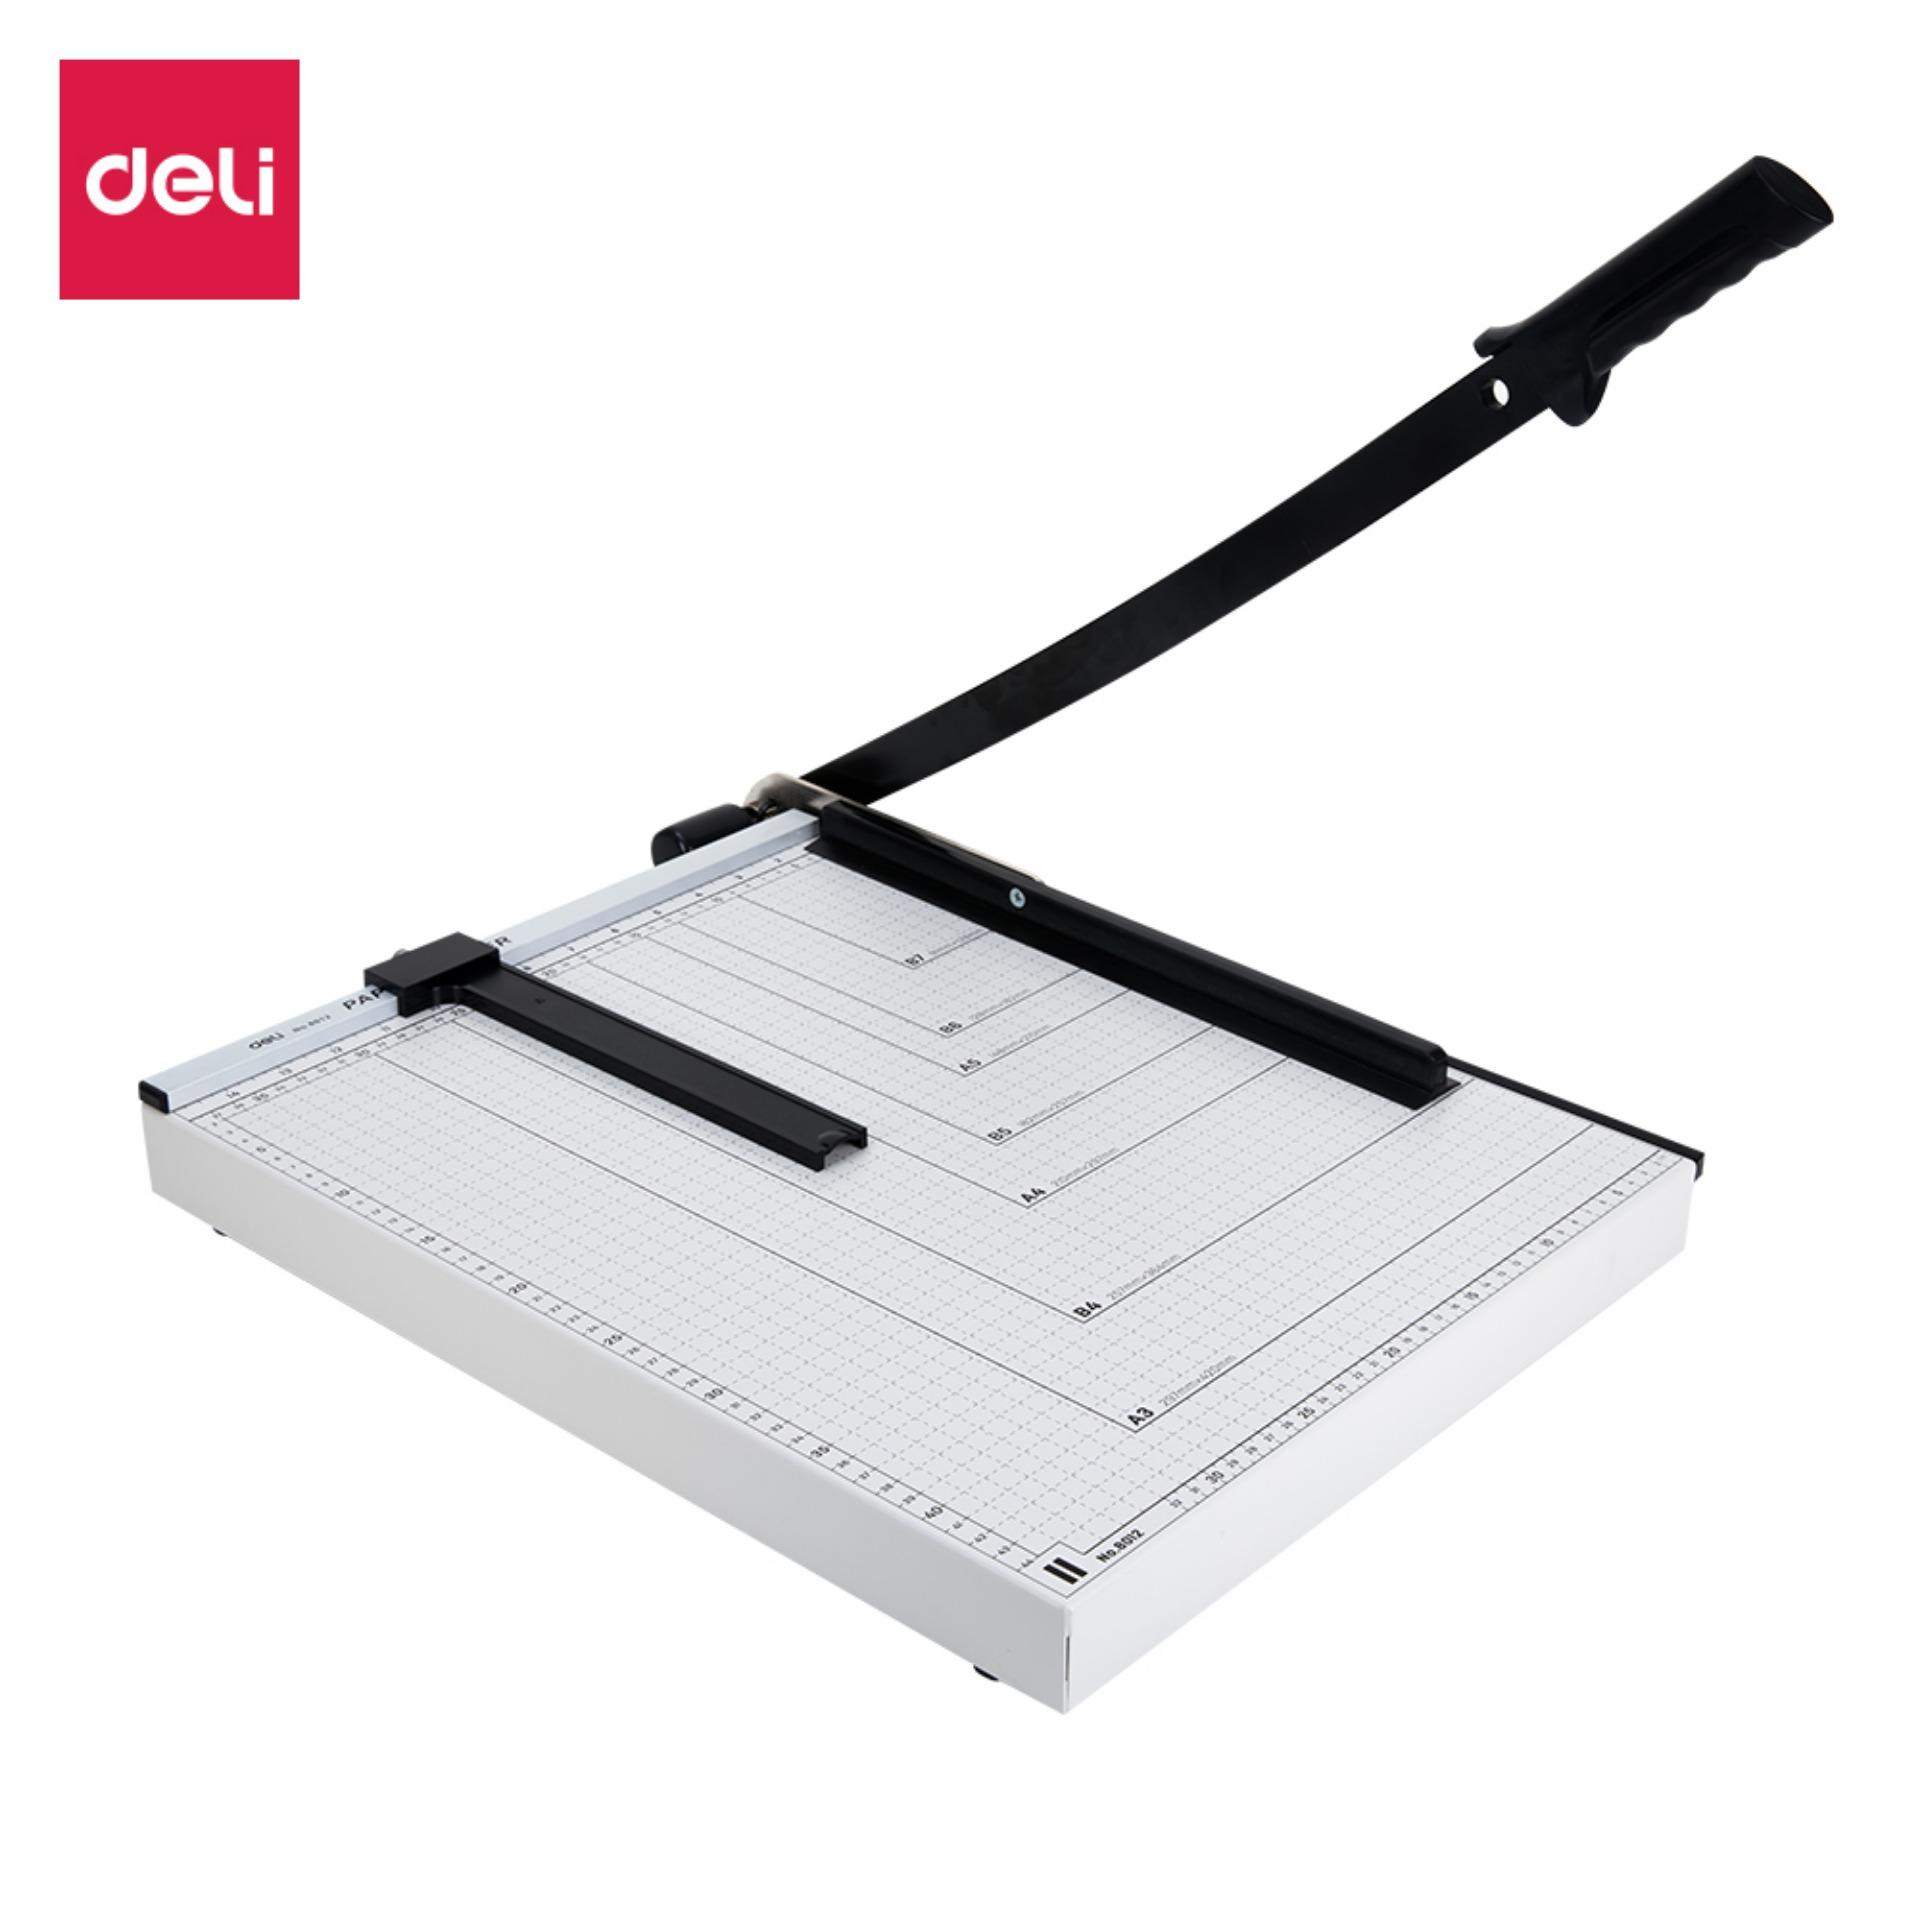 Deli E8012 Paper Trimmer/pemotong Kertas - Steel Paper Trimmer A3 12 Sheets By Deli Official Store.